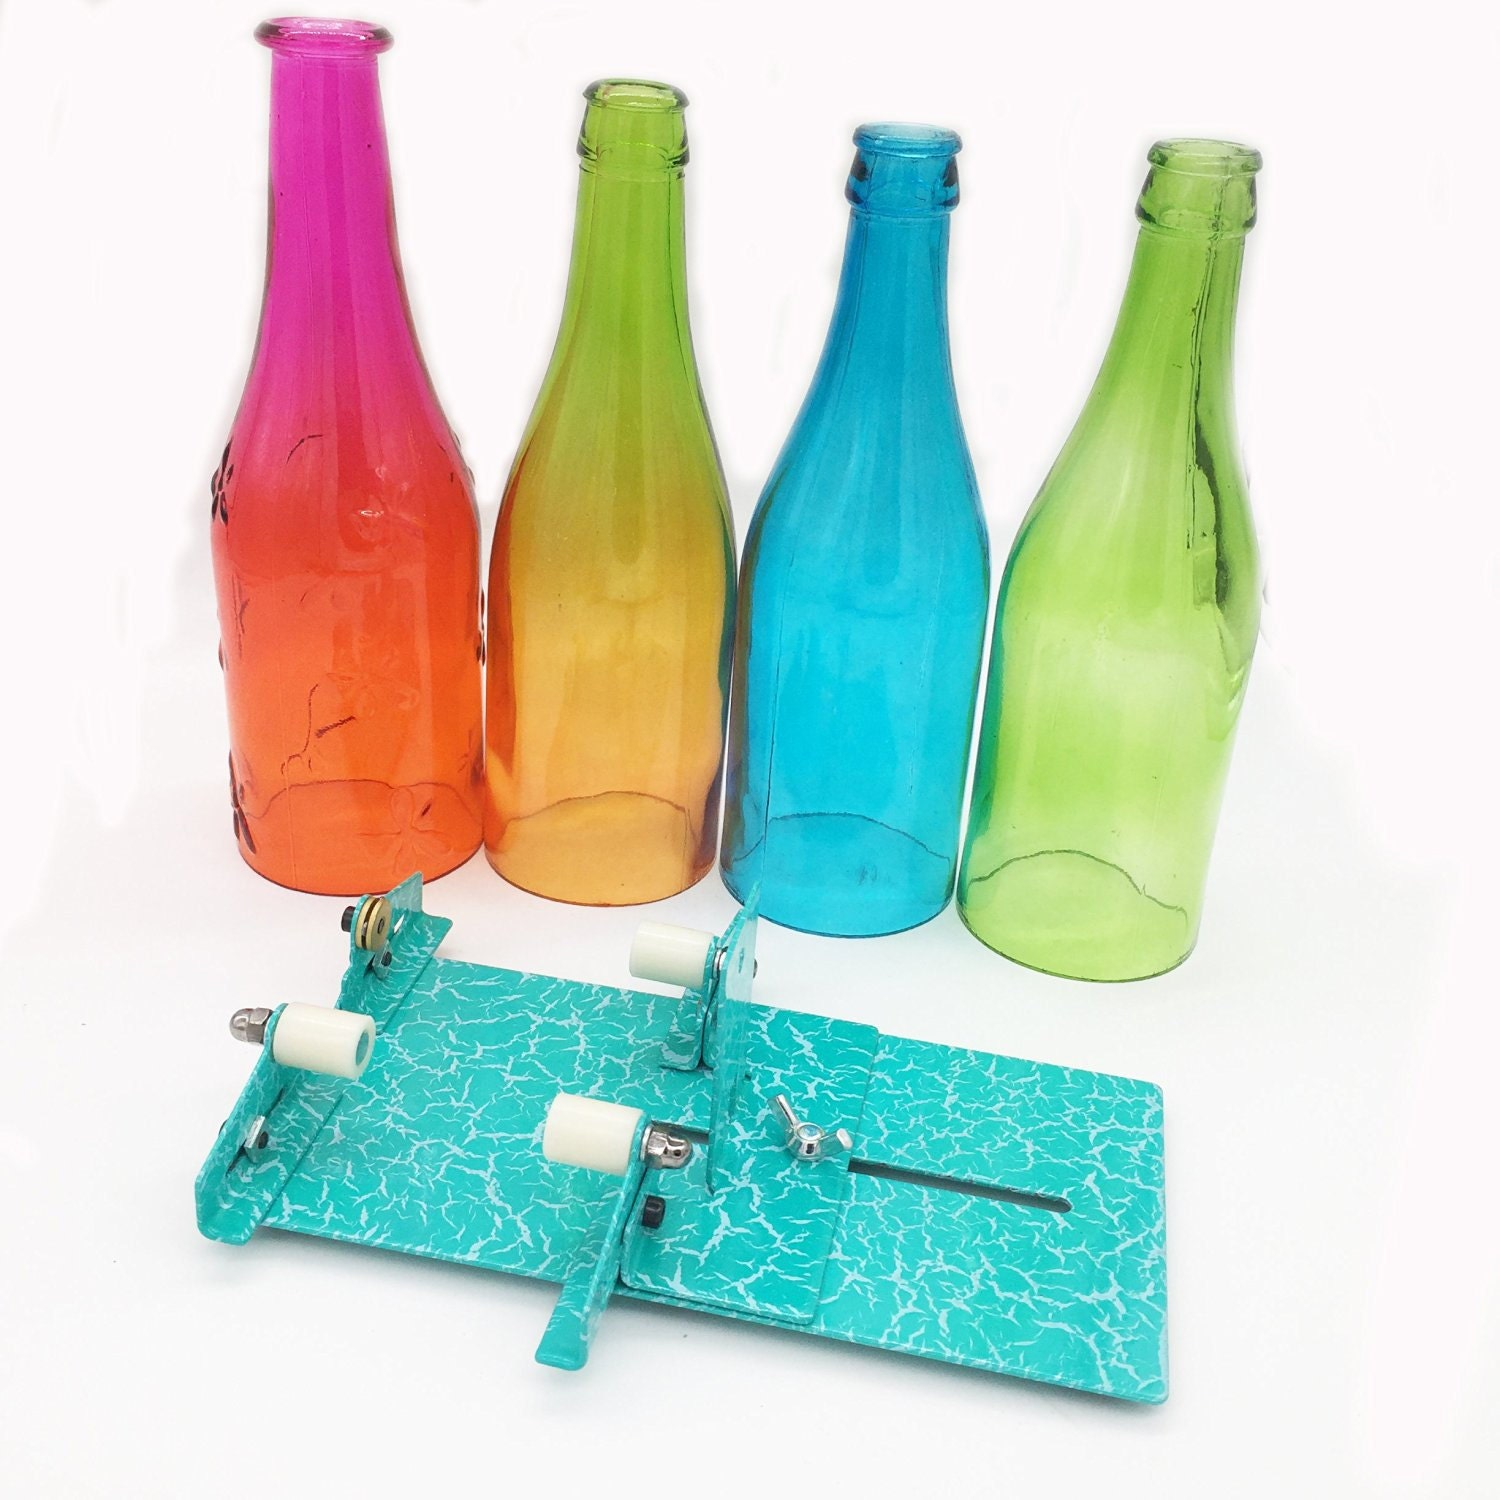 Glass bottle cutter stained glass cutting tool kit glass wine for Glass cutter for wine bottles